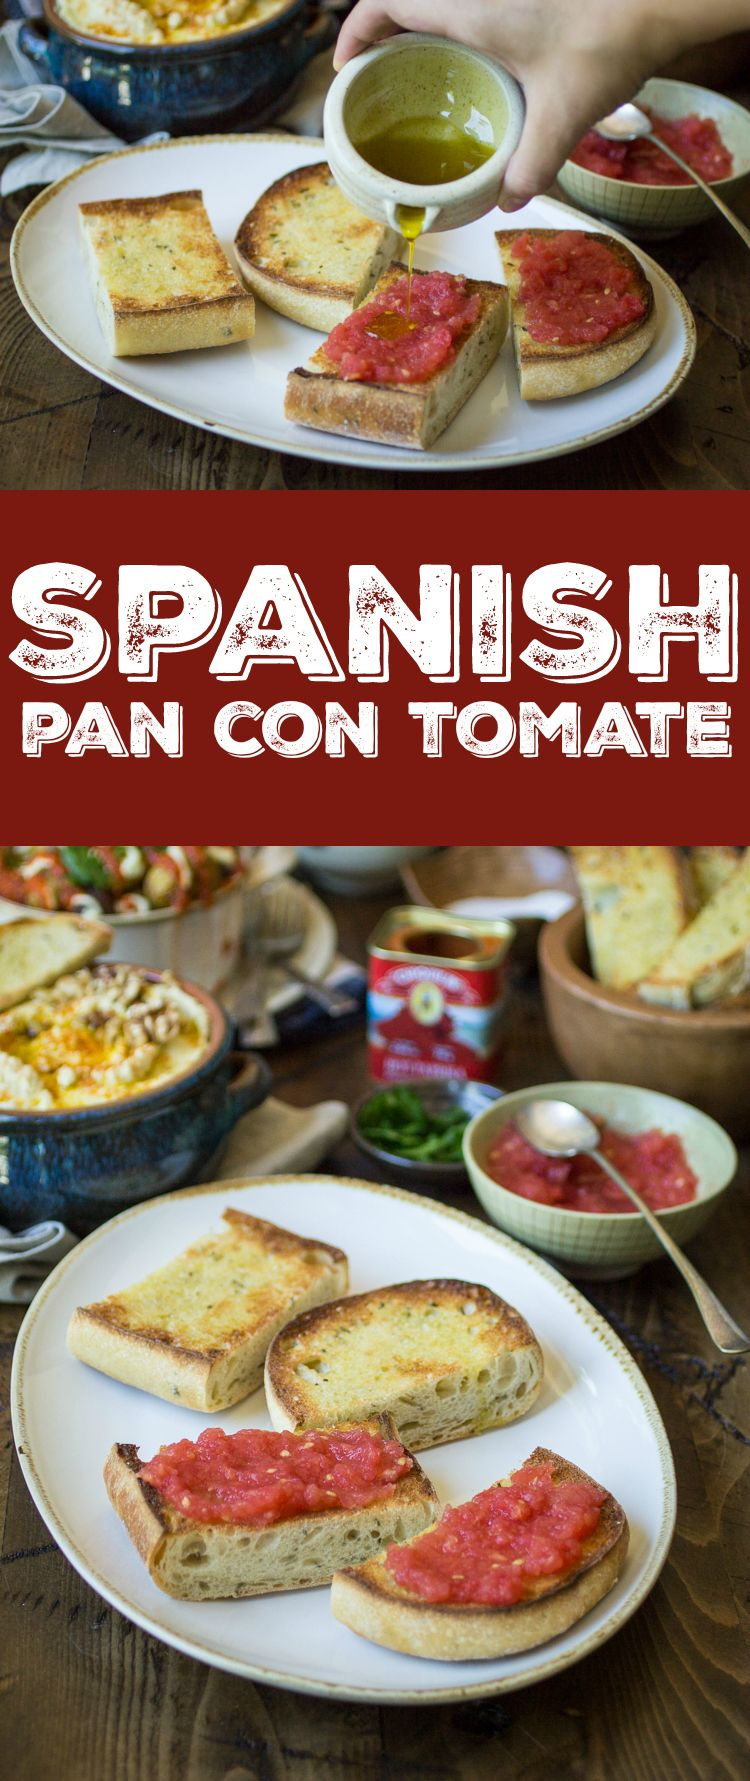 Pan con Tomate (bread with tomato) just might be the easiest– yet tastiest!– appetizer you'll ever make. Pair with a few Spanish tapas to create a filling and delectable meal! #spanishmeals